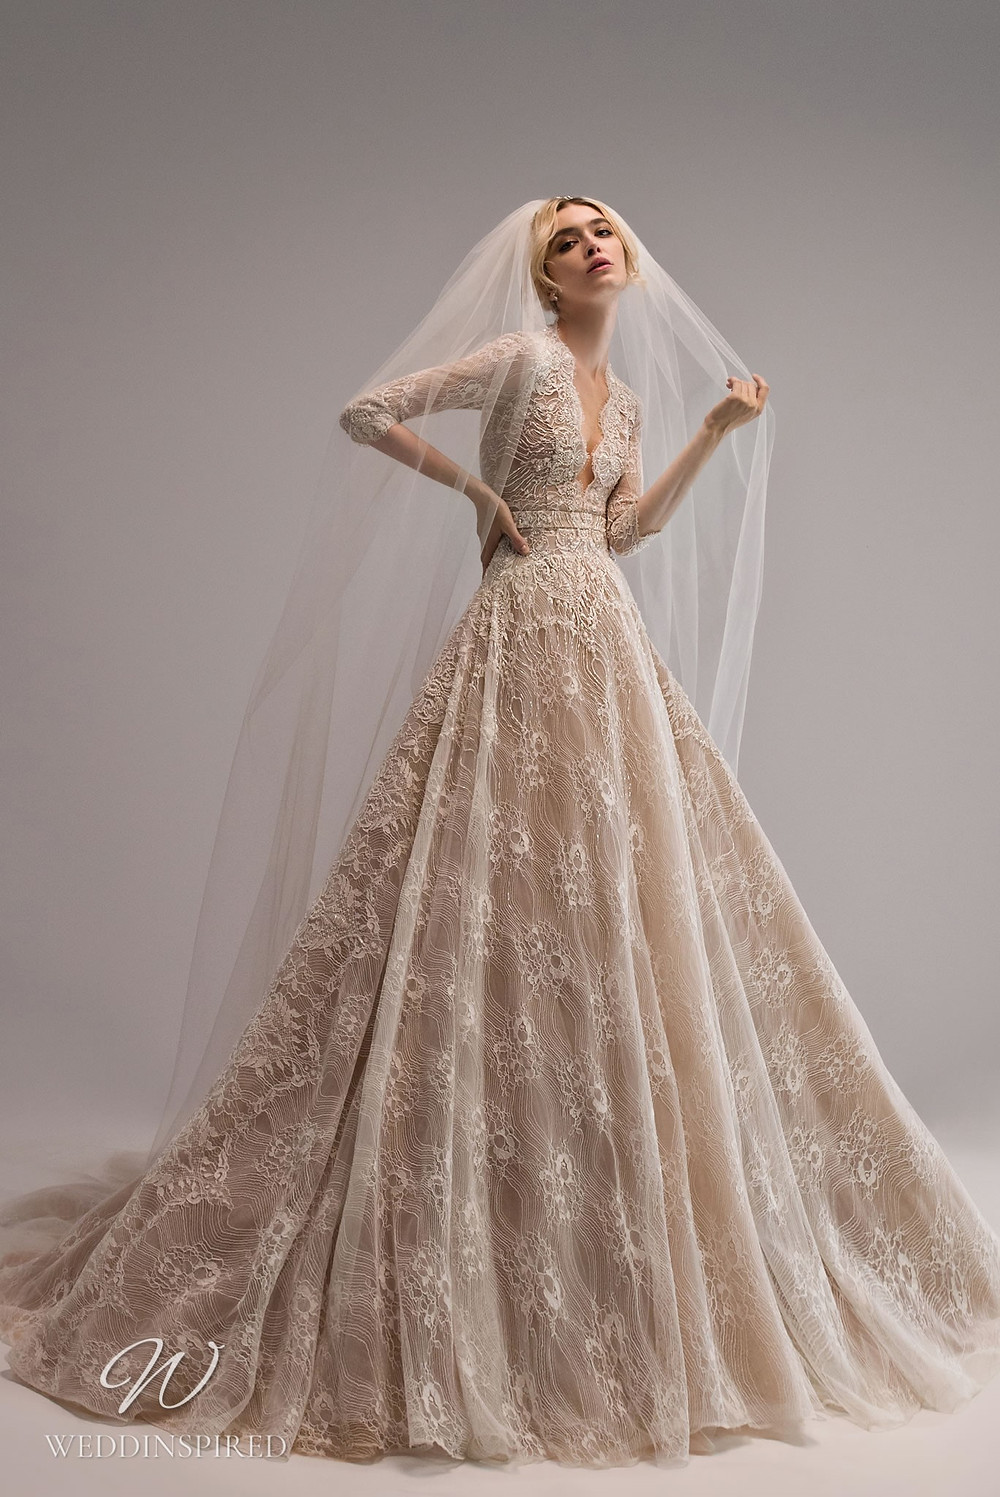 An Ersa Atelier 2021 blush lace ball gown wedding dress with half sleeves